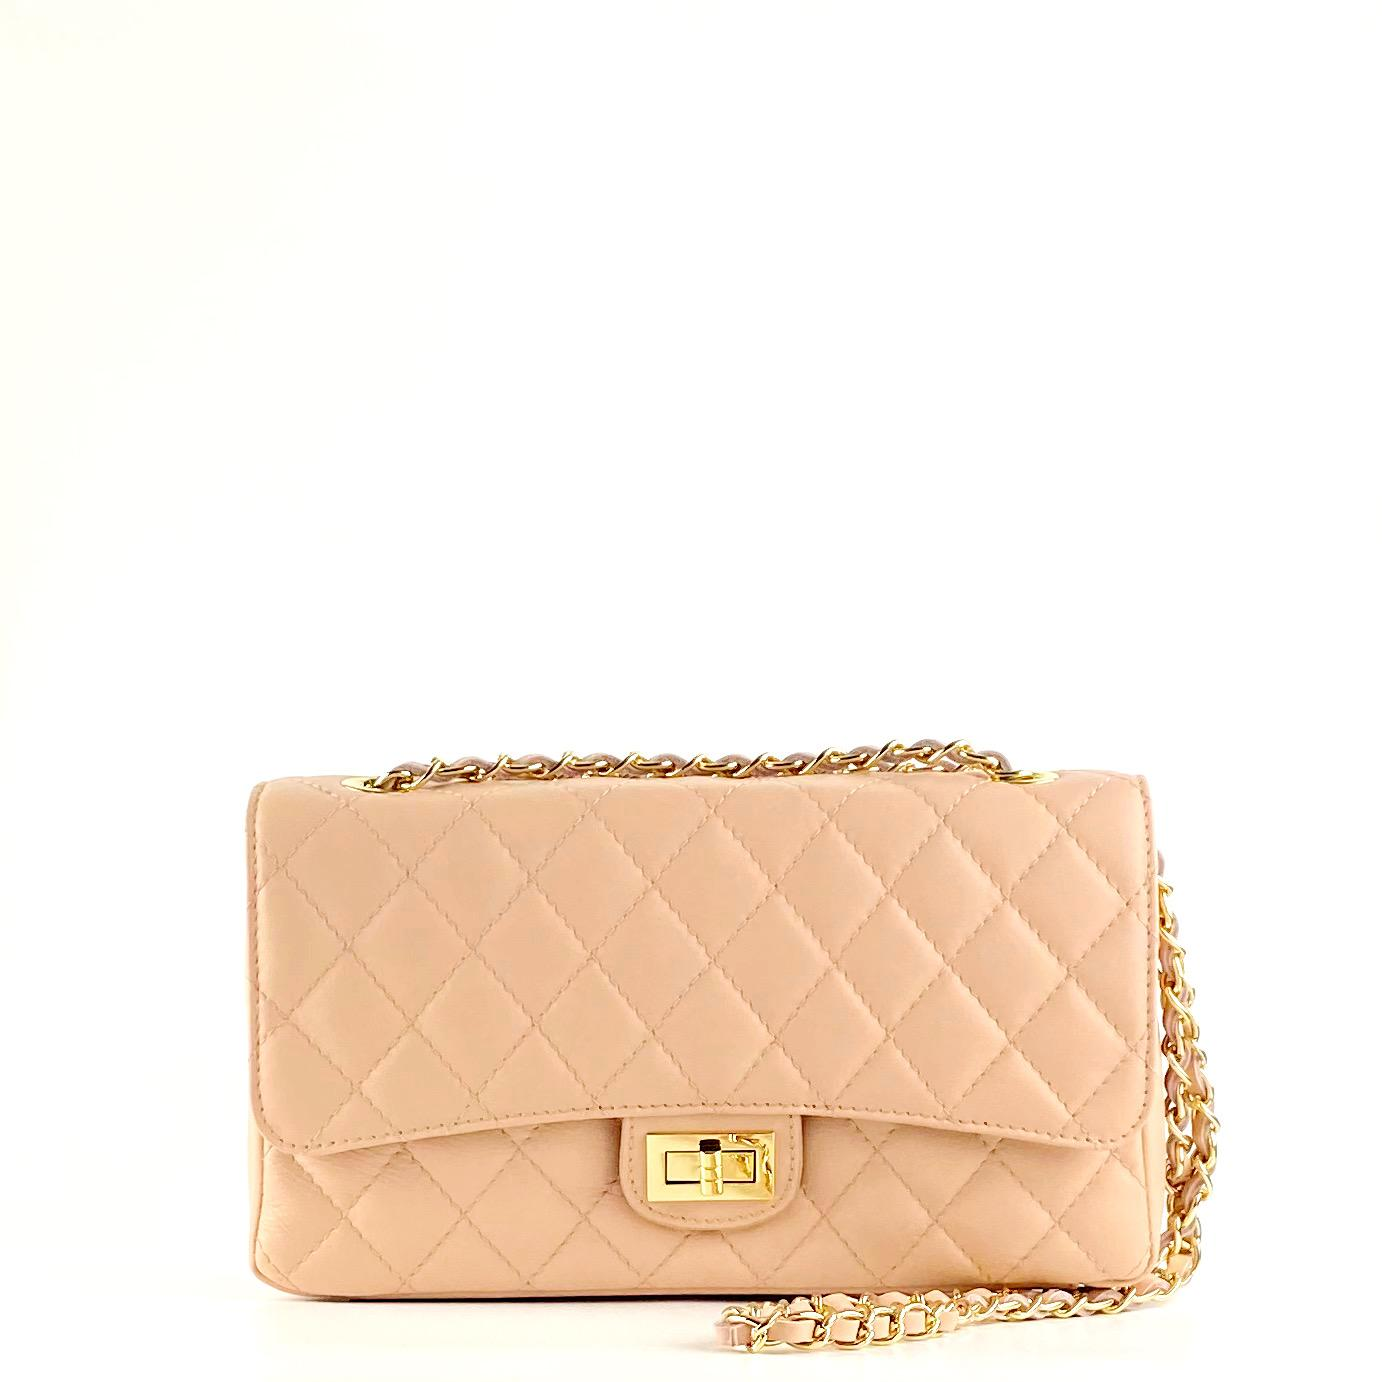 Bolso acolch clasic rosa maquillaje